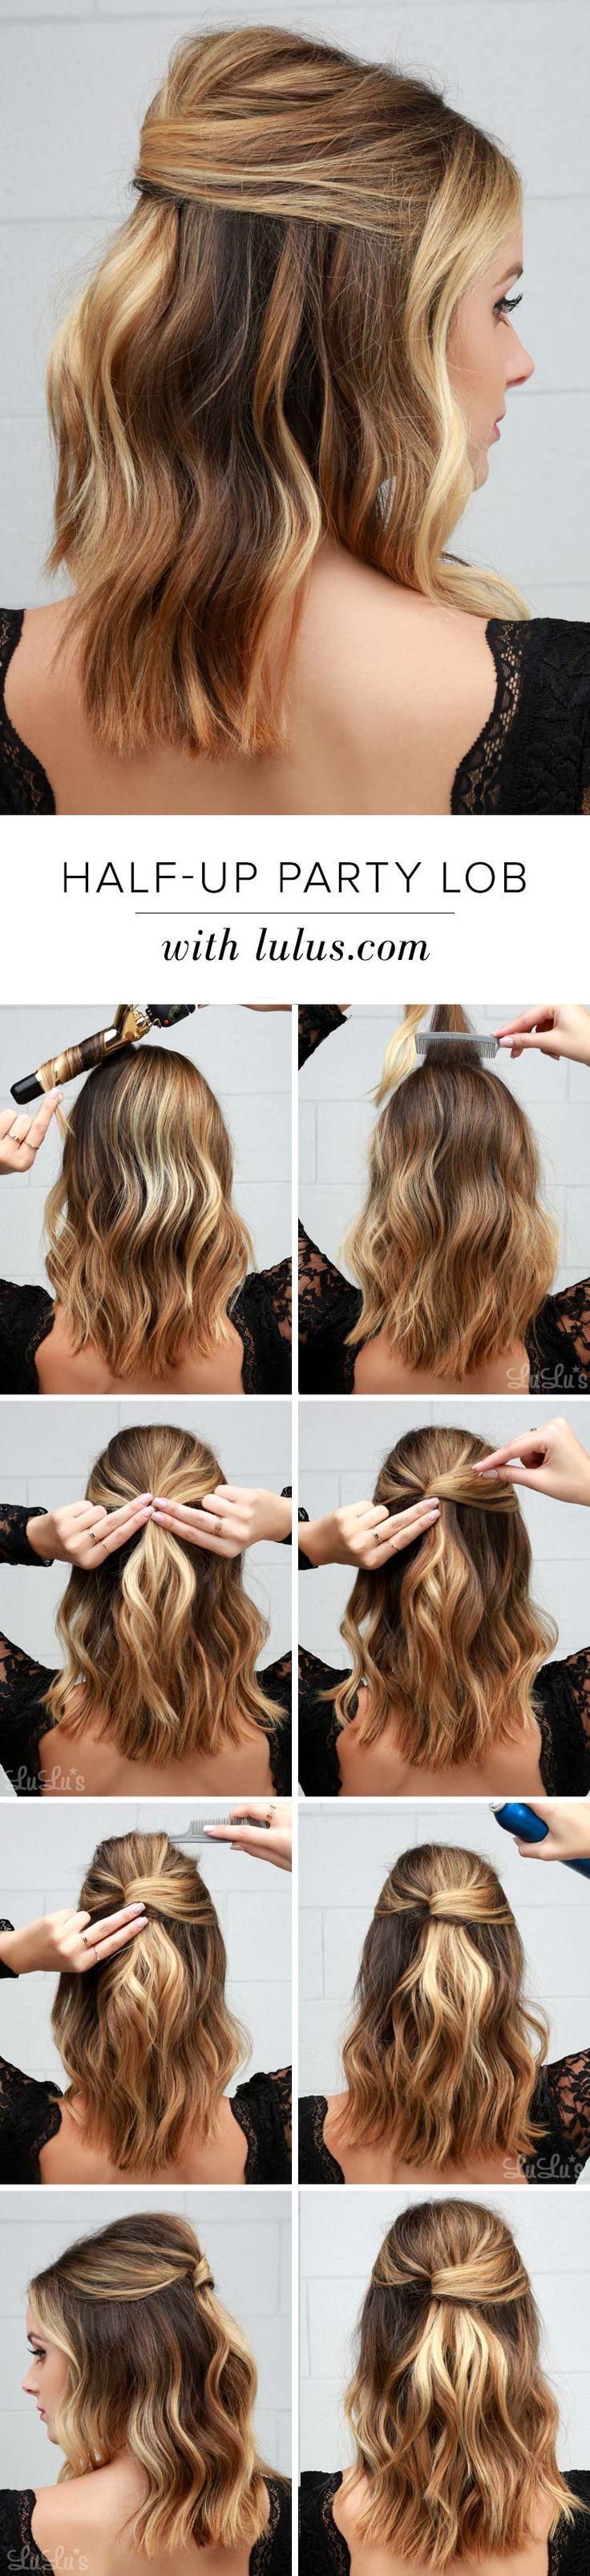 254 best HAIR images on Pinterest